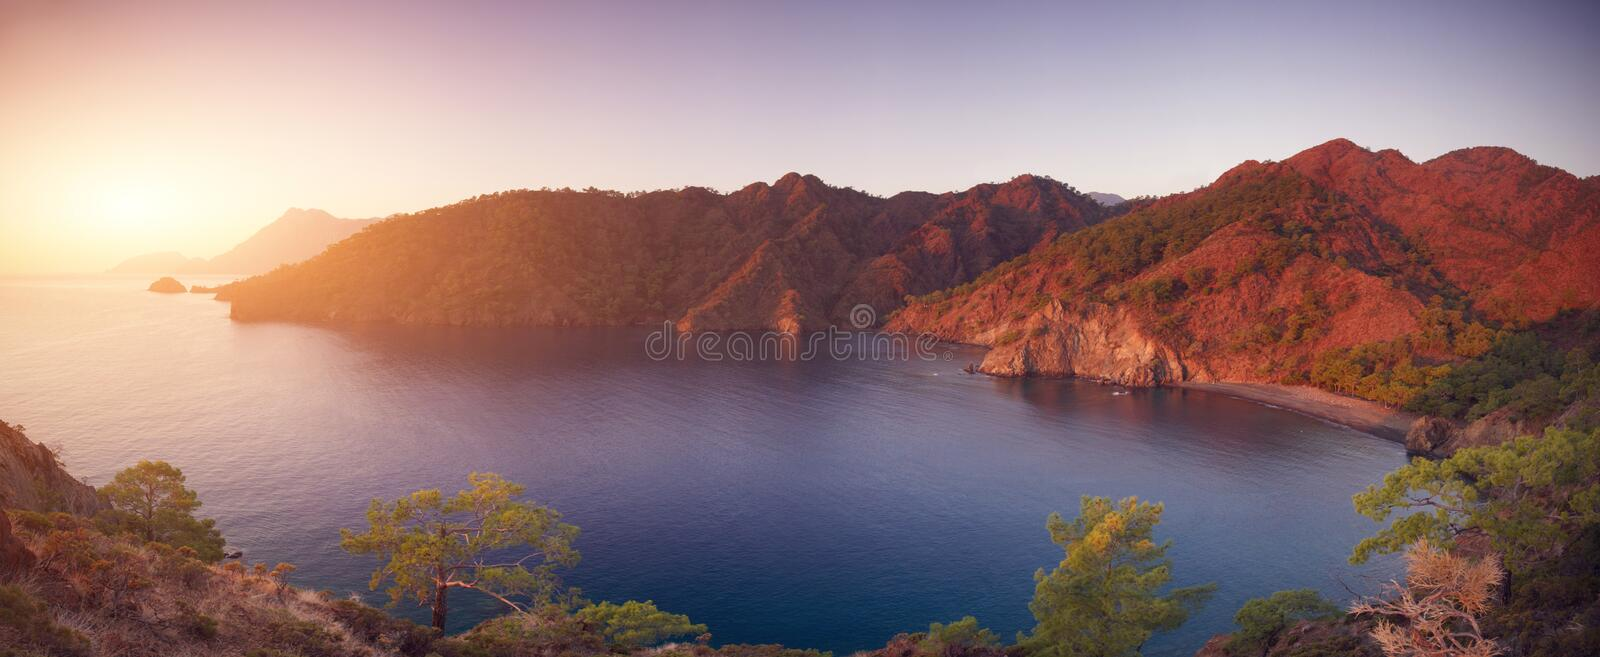 Mediterranean coast of Turkey at sunset stock photos